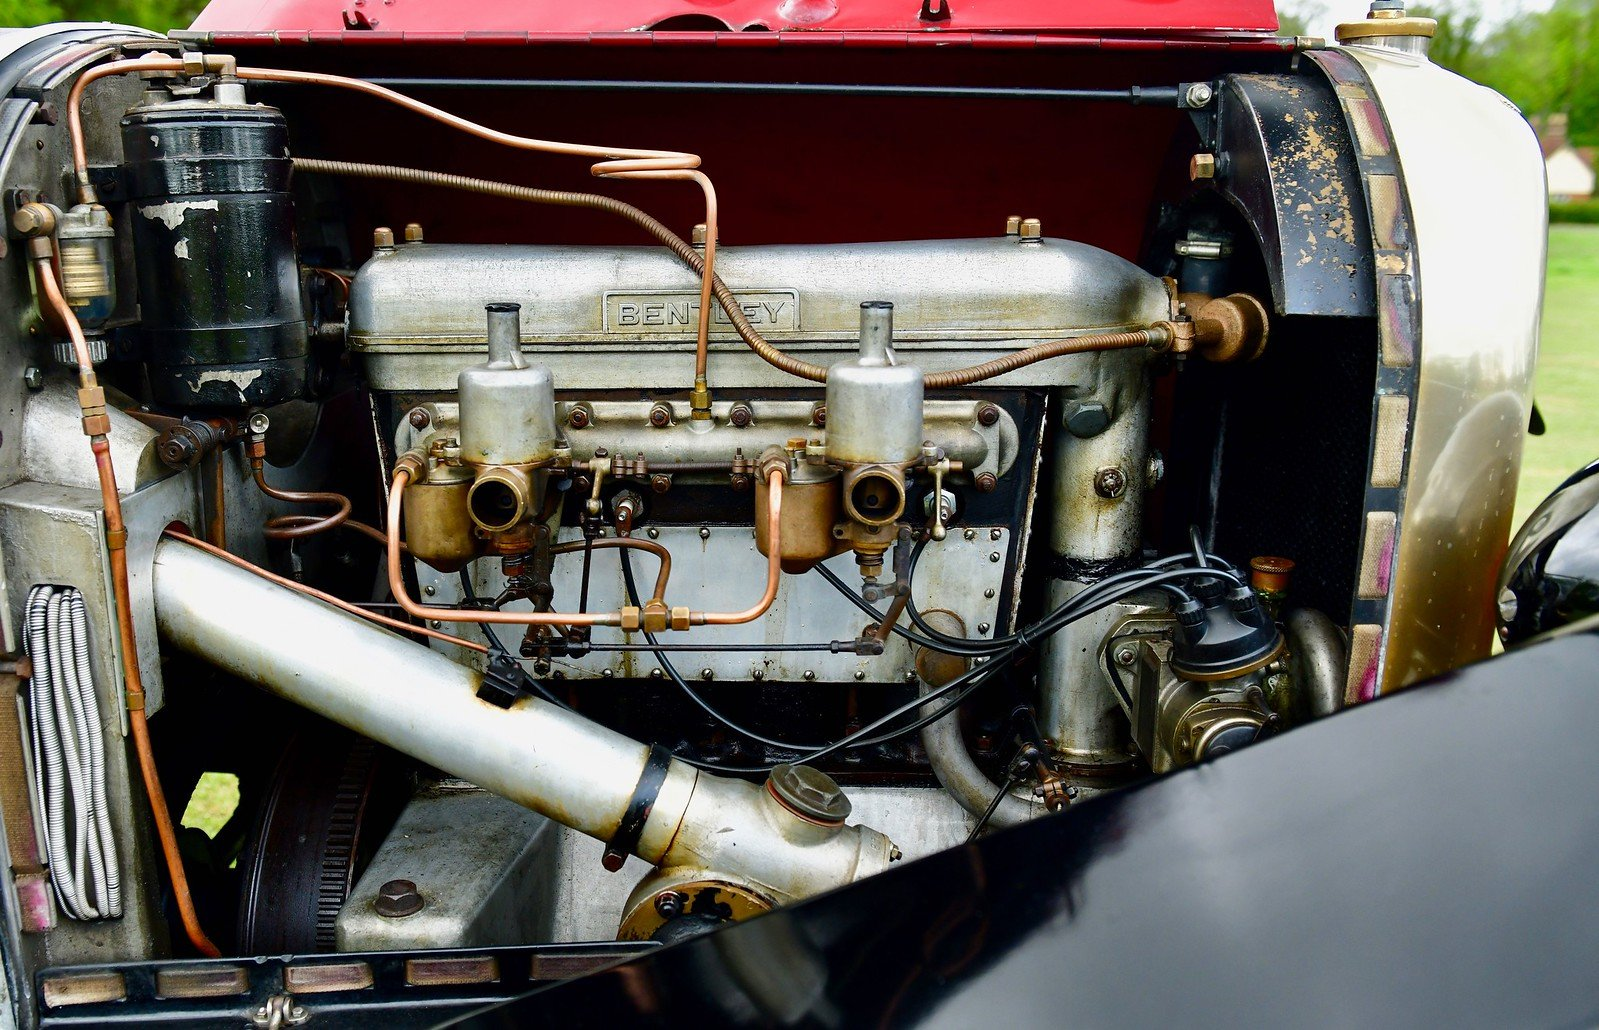 1926 Bentley 3 litre with Vanden Plas Style Body For Sale (picture 6 of 6)